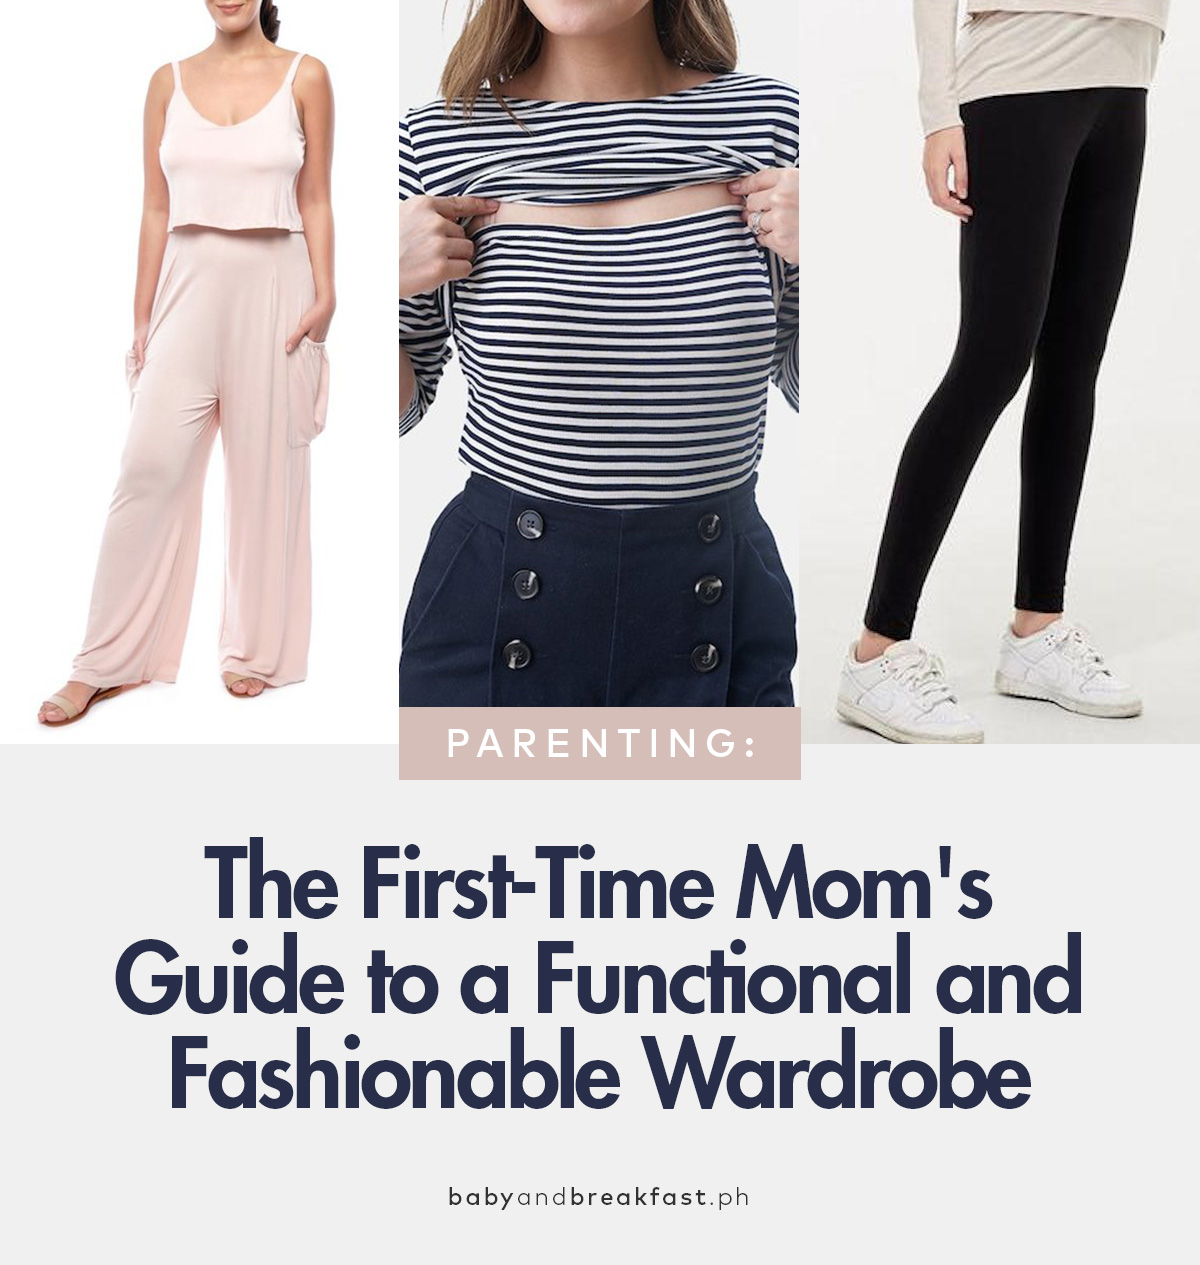 The First-Time Mom's Guide to a Functional and Fashionable Wardrobe